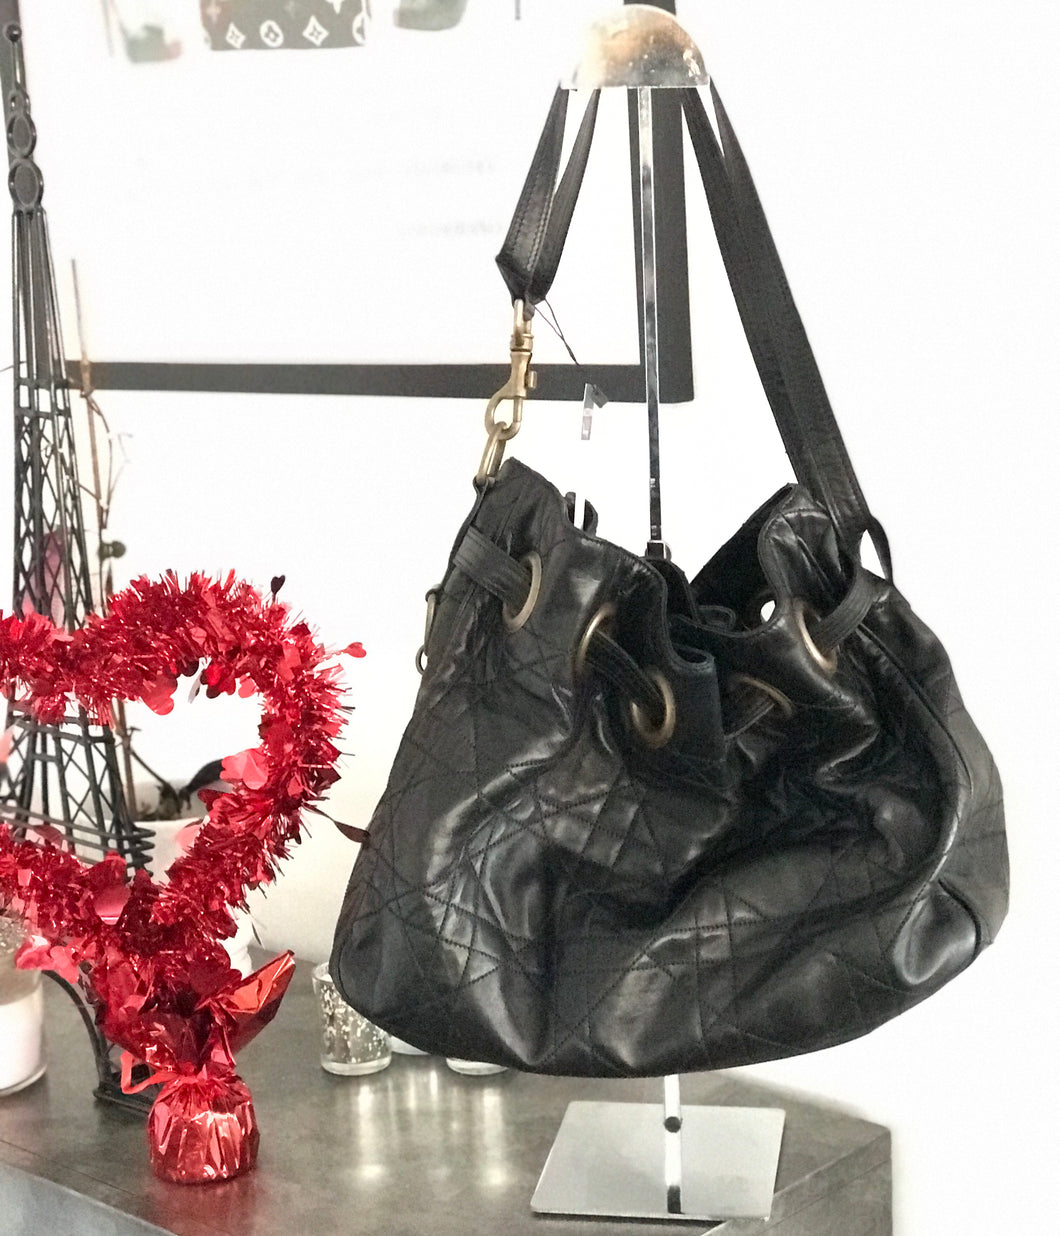 Dior Lambskin Cannage Quilted Handbag